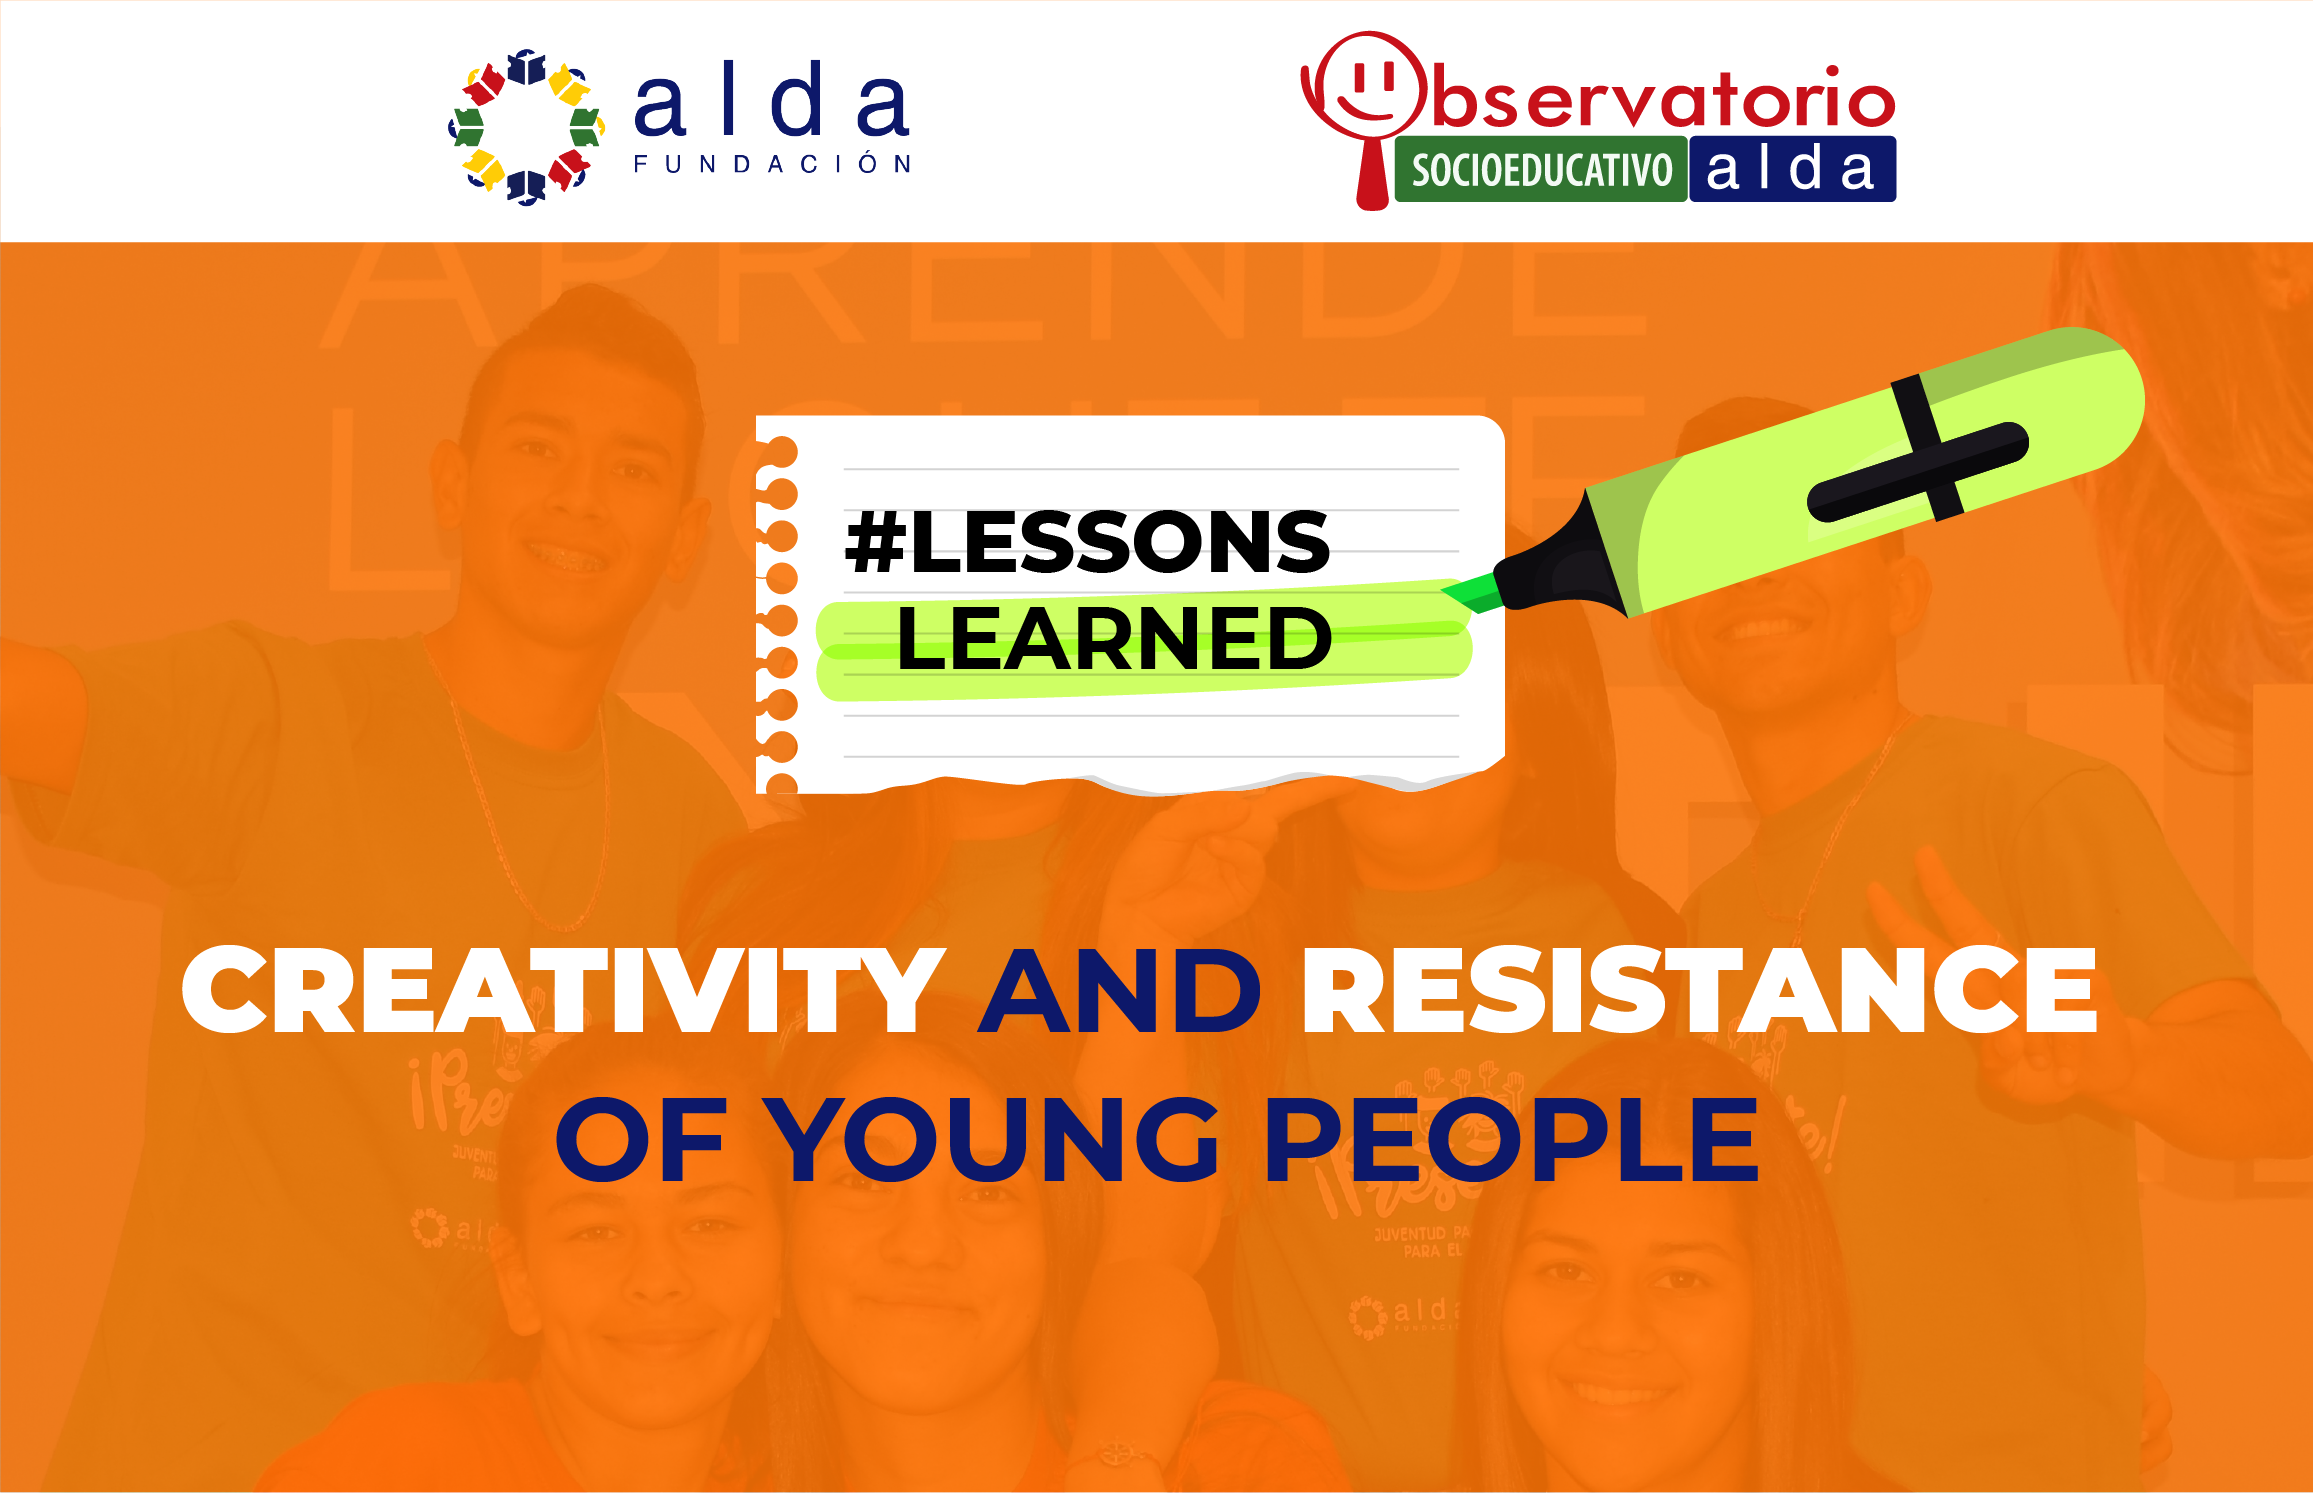 Creativity and resistance of young people